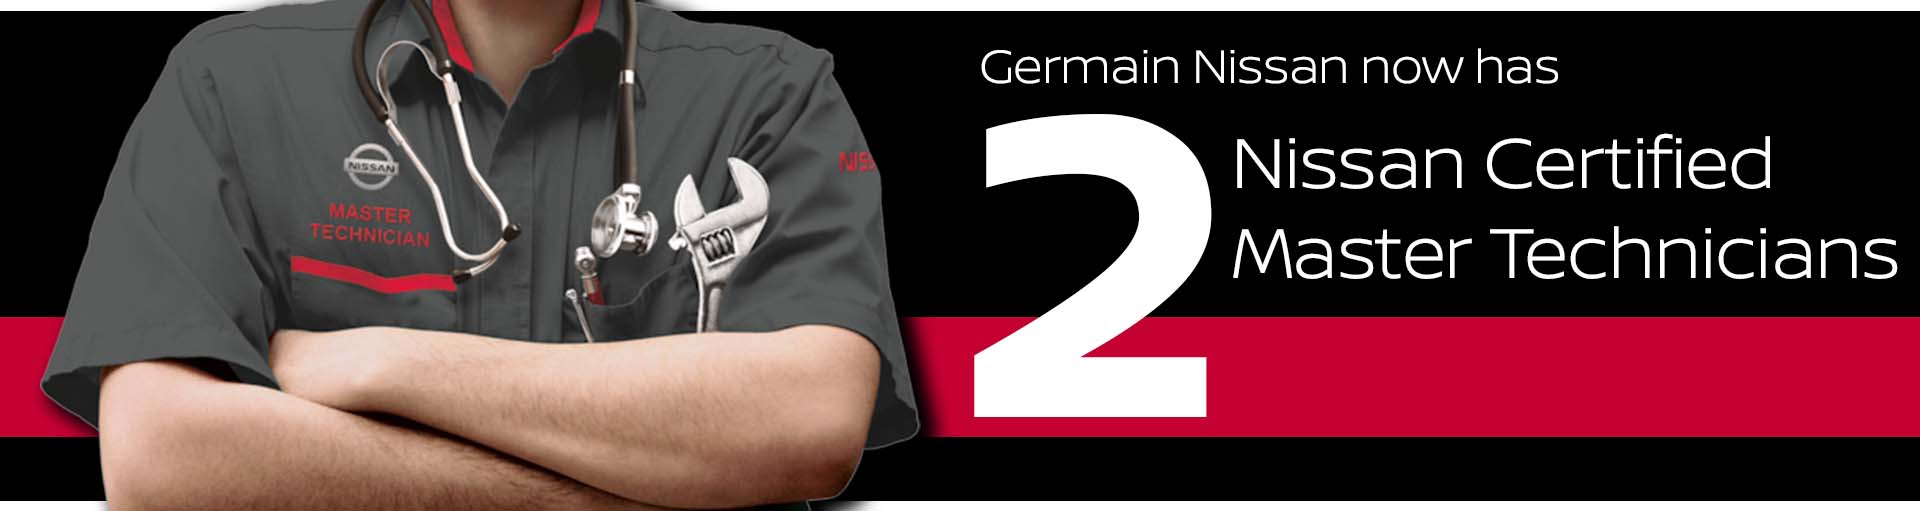 Germain Nissan Master Technicians